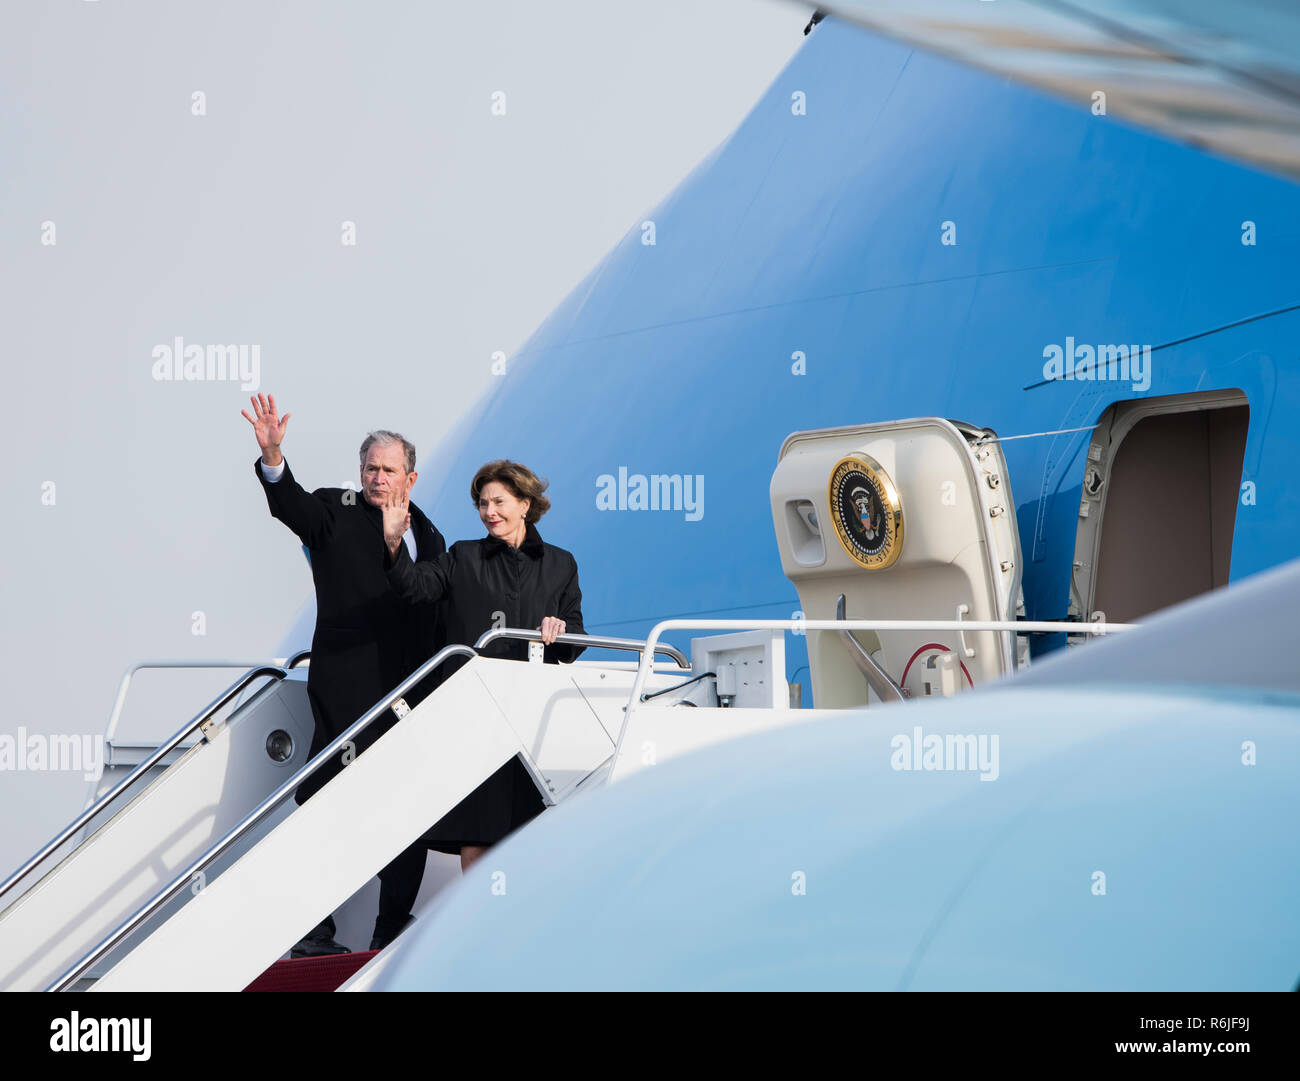 Washington DC, USA. 5th Dec 2018. Former U.S. President George W. Bush and First Lady Laura Bush wave as they board Air Force One for the return journey to Houston with the casket of his father and former President George W. Bush following the State Funeral and Memorial in the Nations Capital December 5, 2018 in Andrews, Maryland. Bush, the 41st President, died in his Houston home at age 94. Credit: Planetpix/Alamy Live News Stock Photo